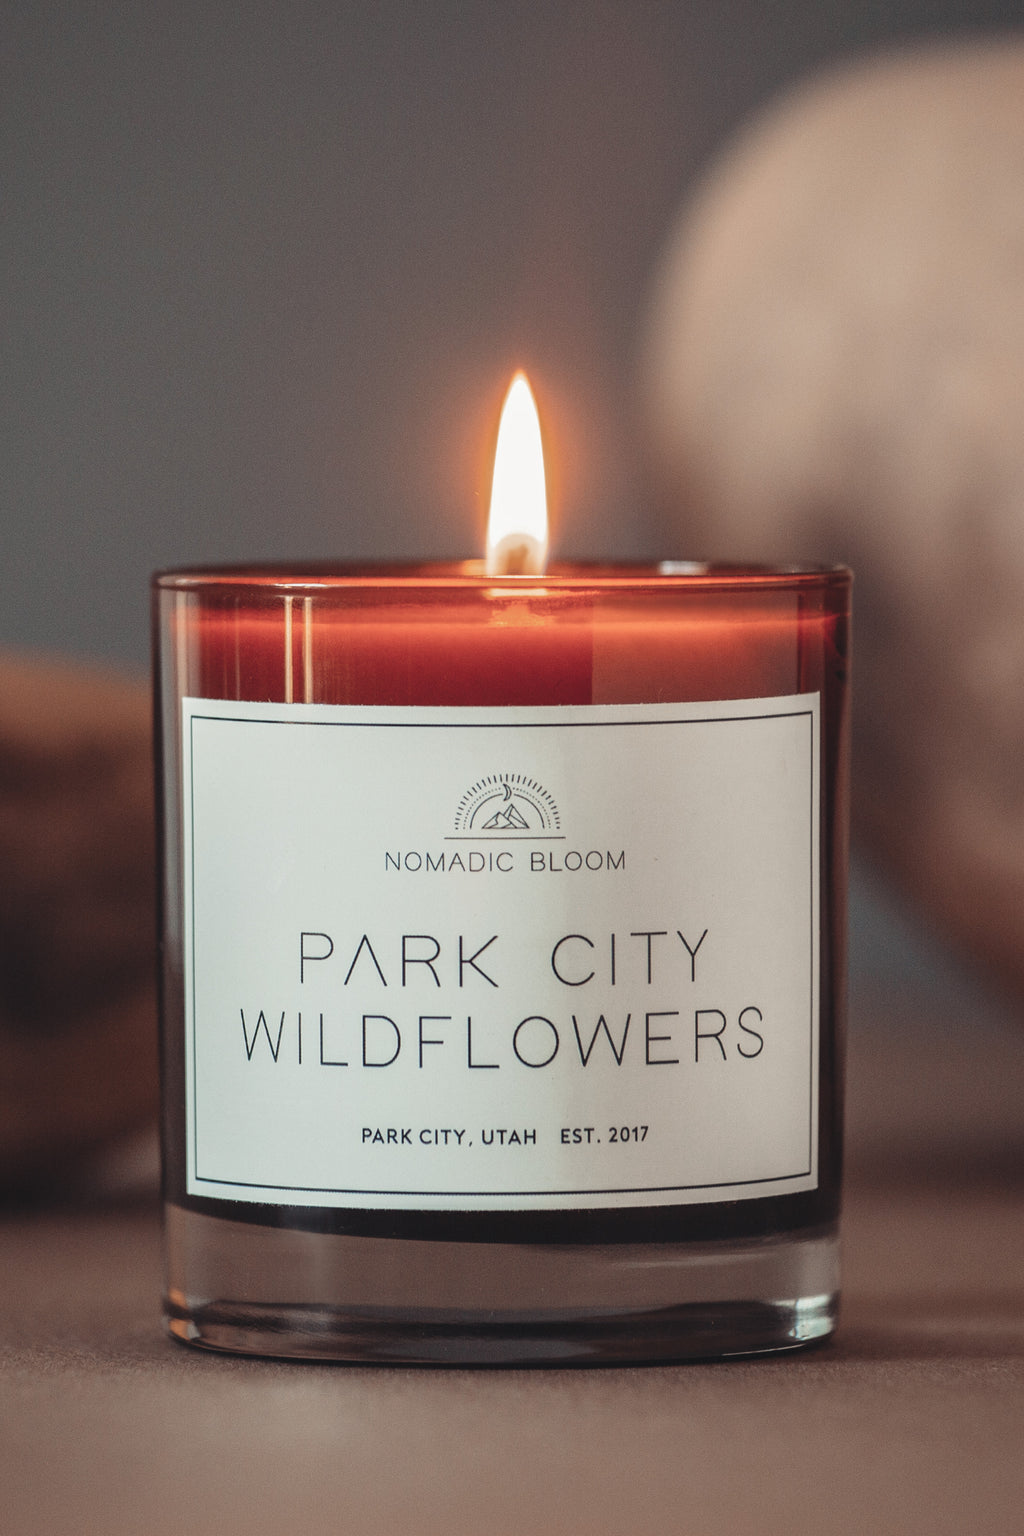 Park City Wildflowers Candle